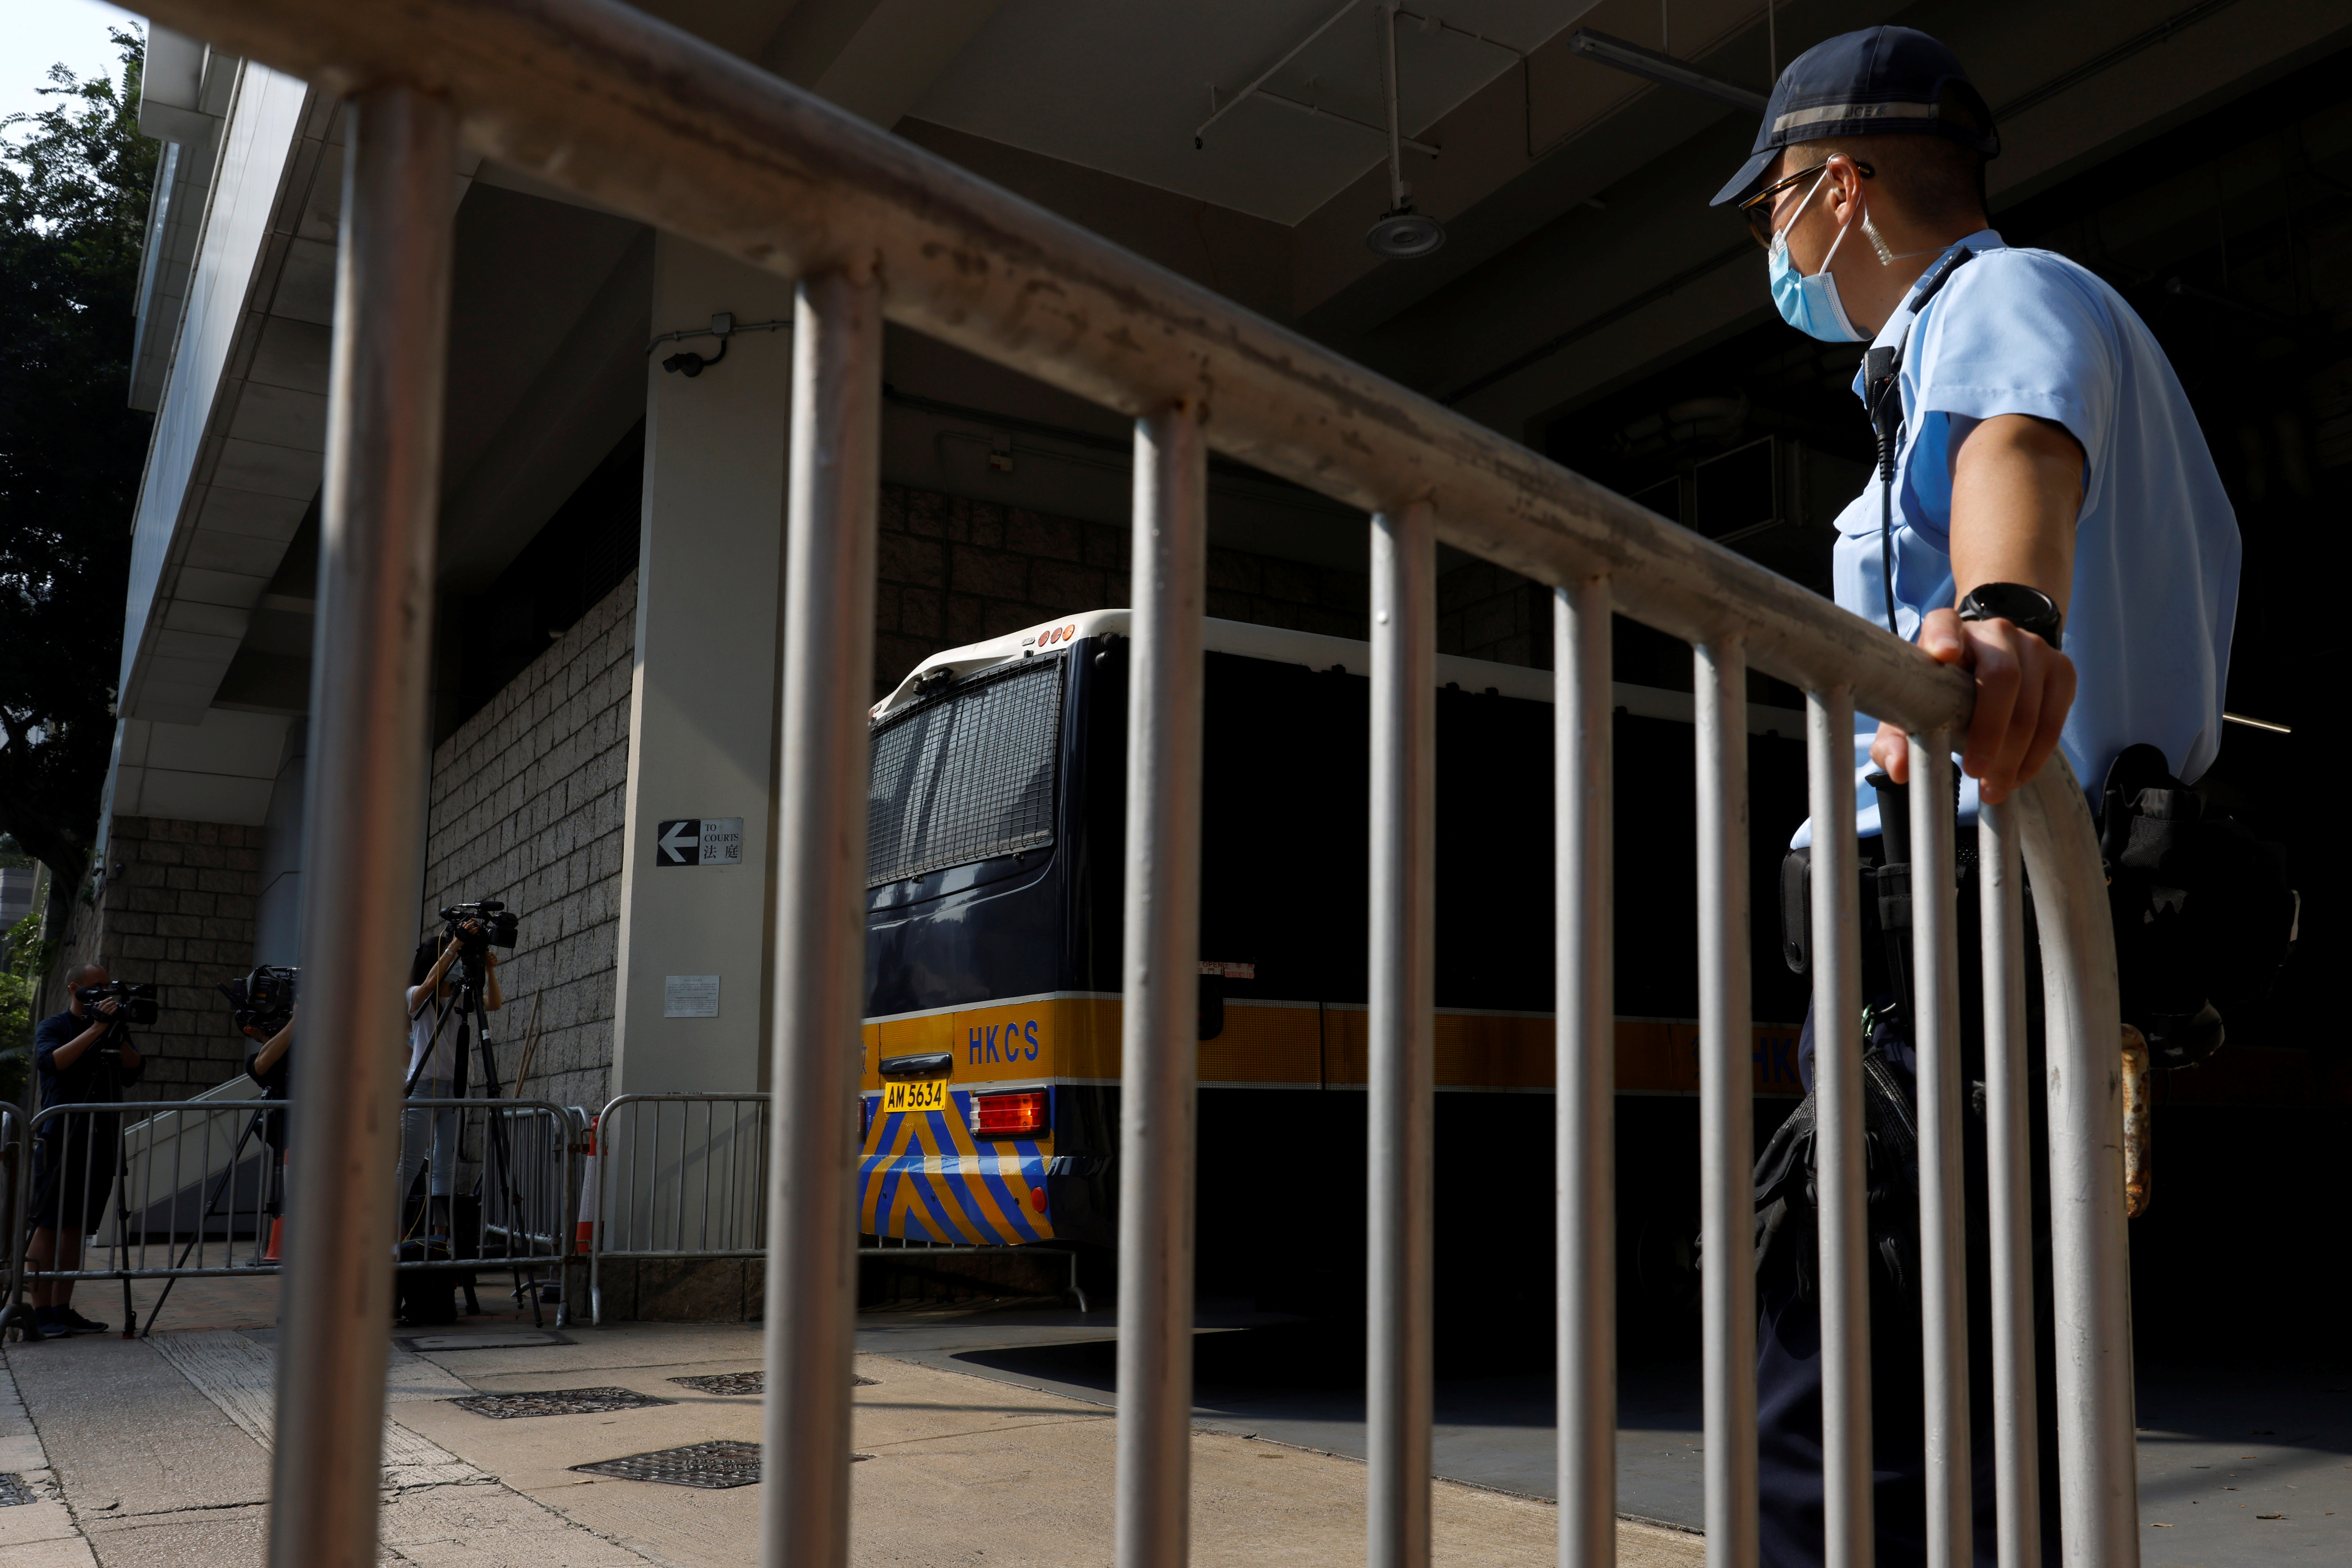 A prison van which is carrying Tong Ying-kit, the first person charged under the new national security law, arrives at High Court for a hearing, in Hong Kong, China July 27, 2021. REUTERS/Tyrone Siu